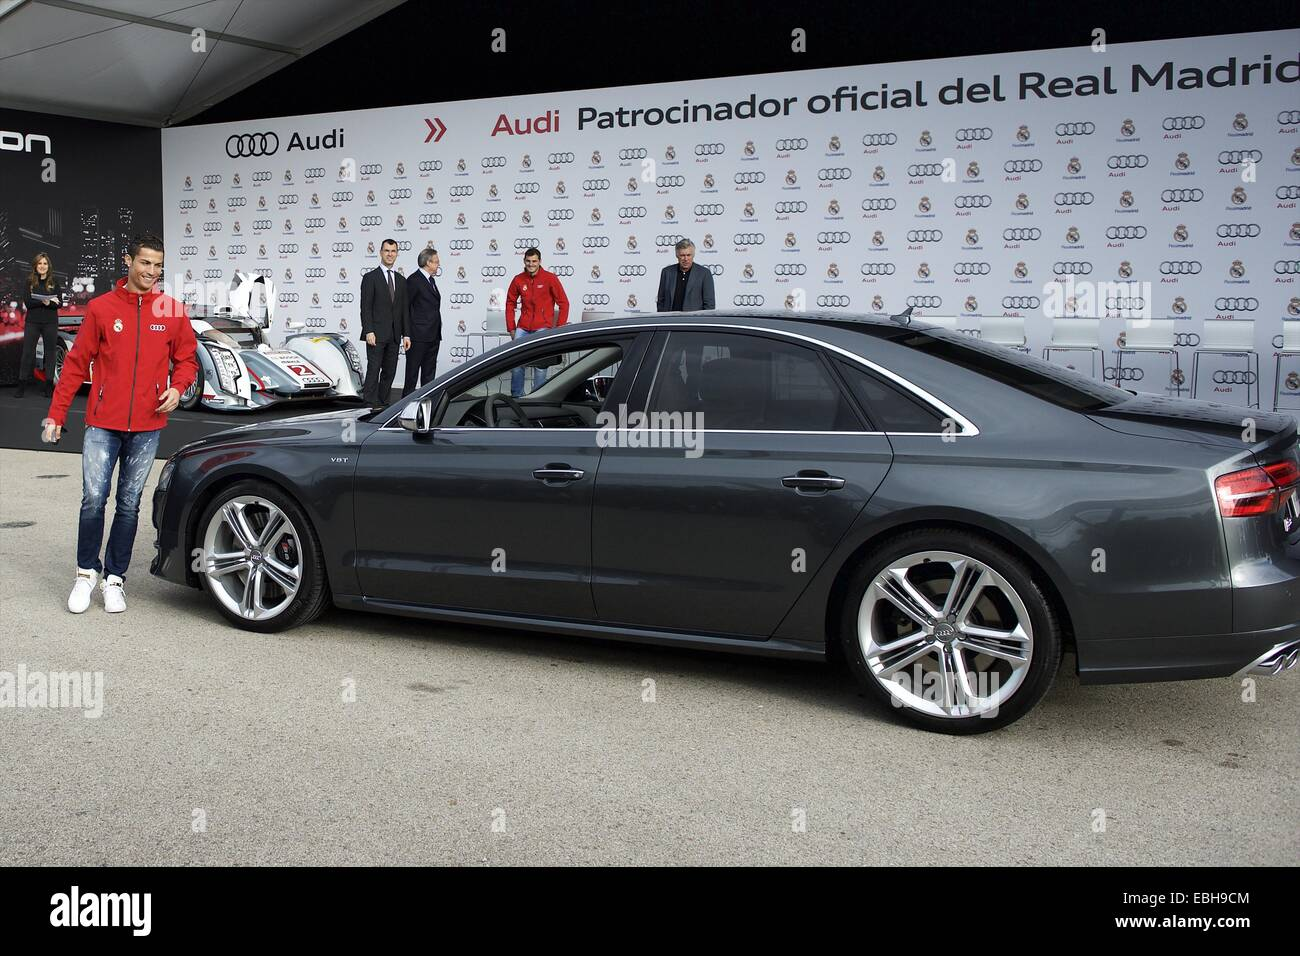 1st Dec, 2014. Cristiano Ronaldo Received The New Audi Car During The  Presentation Of Real Madridu0027s New Cars Made By Audi At Valdebebas On  December 1, ...